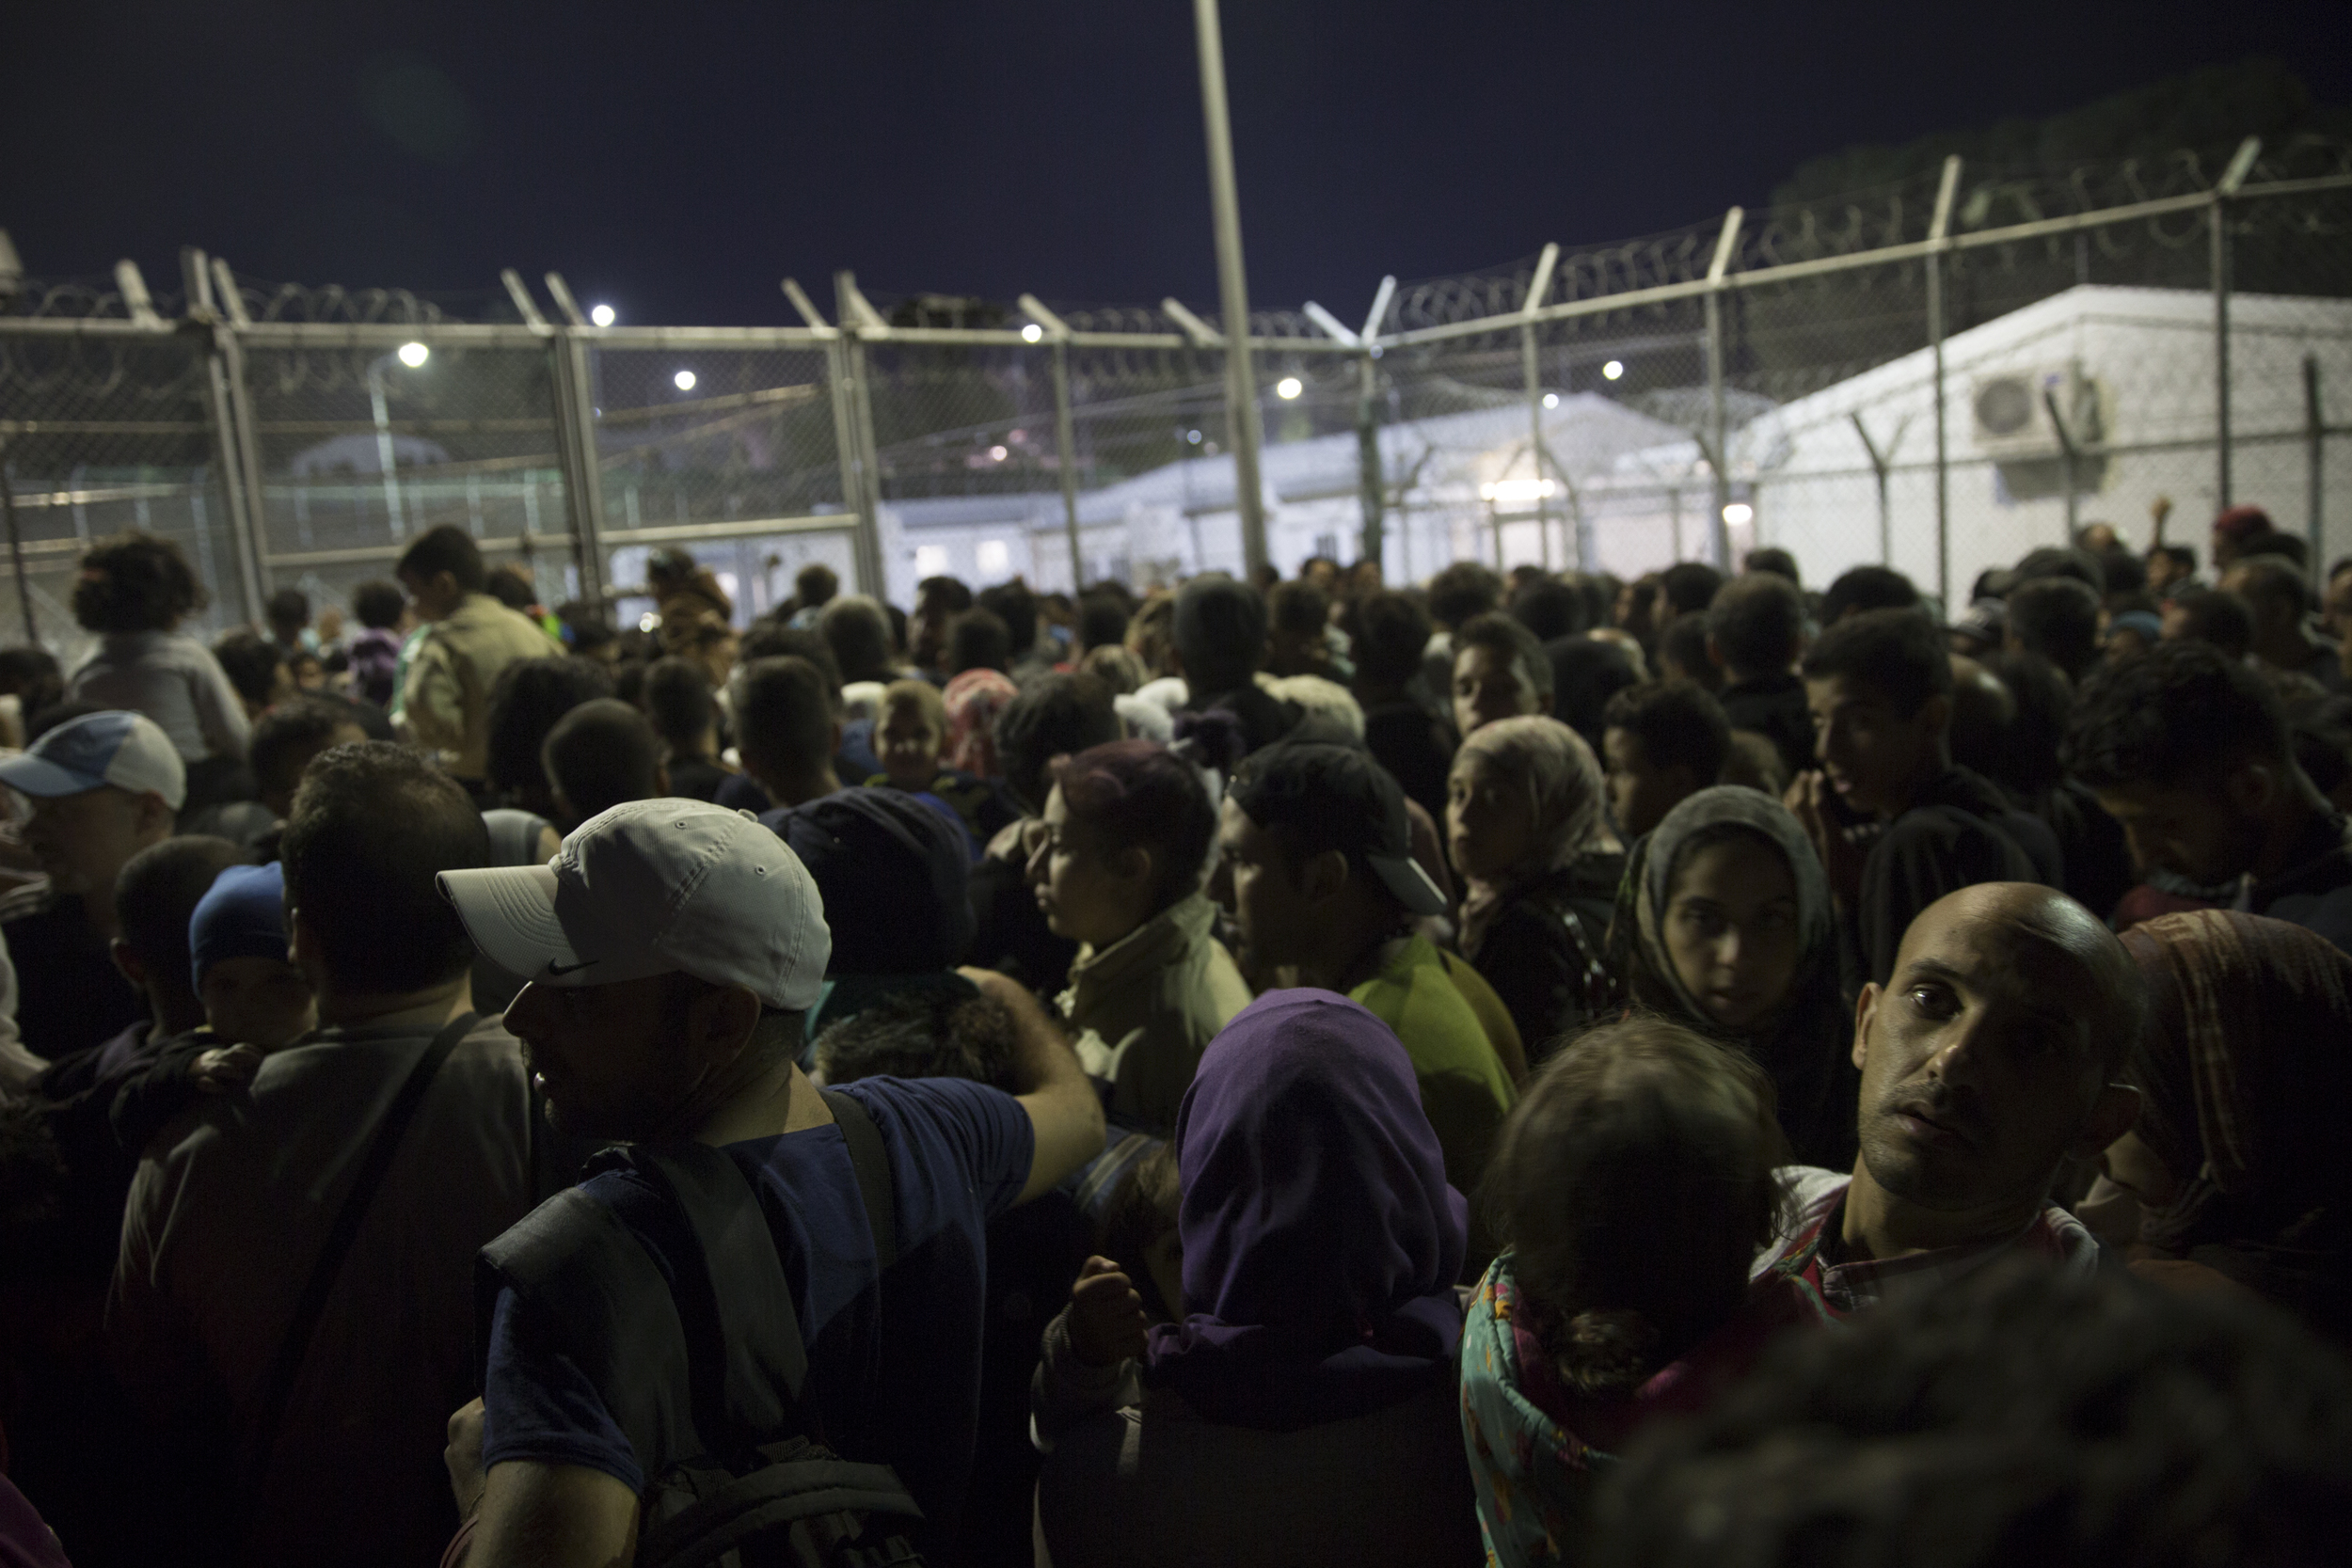 Refugees wait outside Moria, a former detention centre, to be fingerprinted and registered